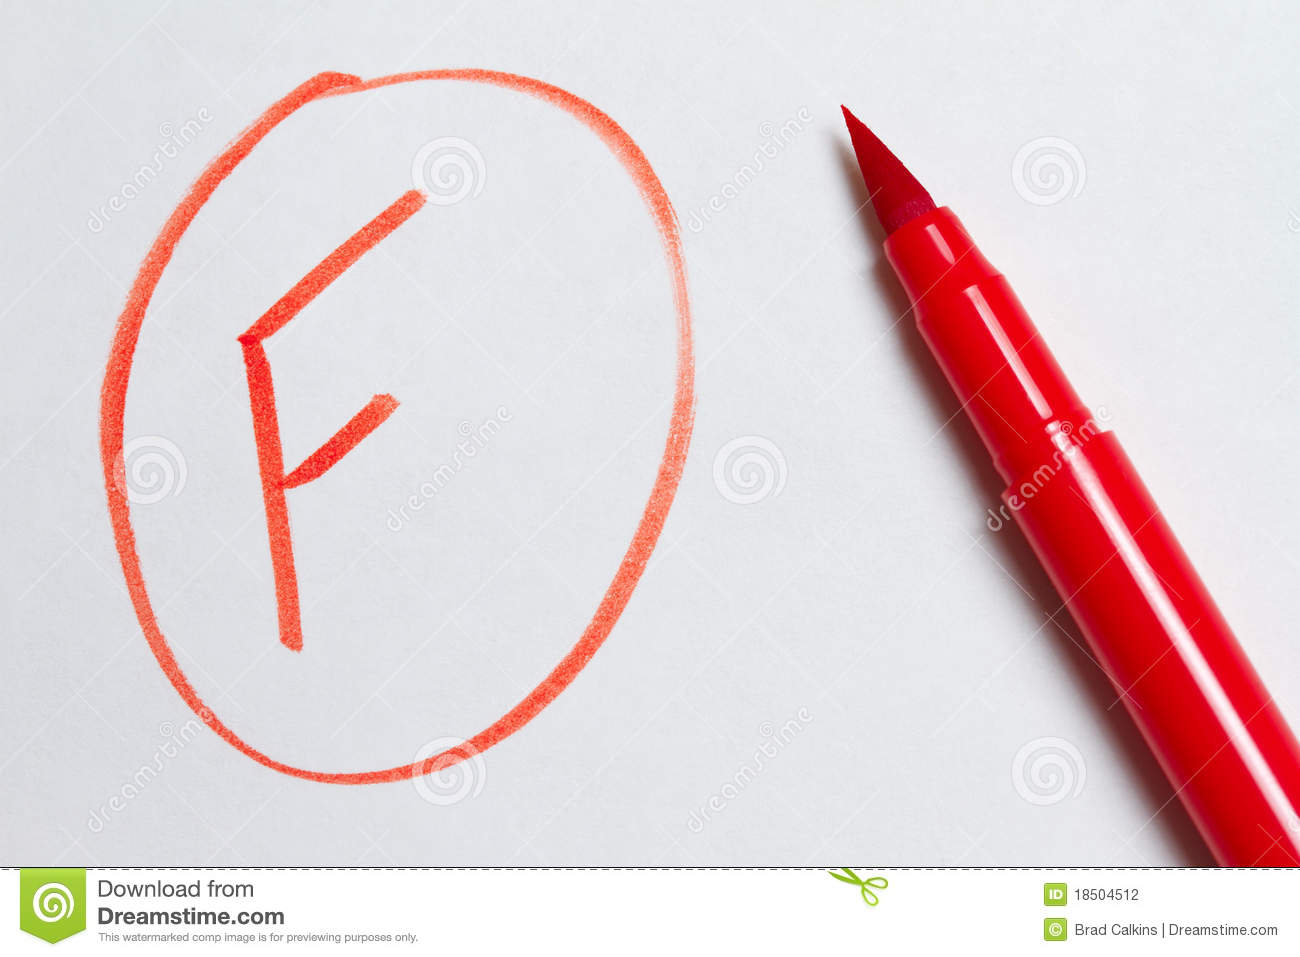 Red marking pen and F for failing grade on school paper.